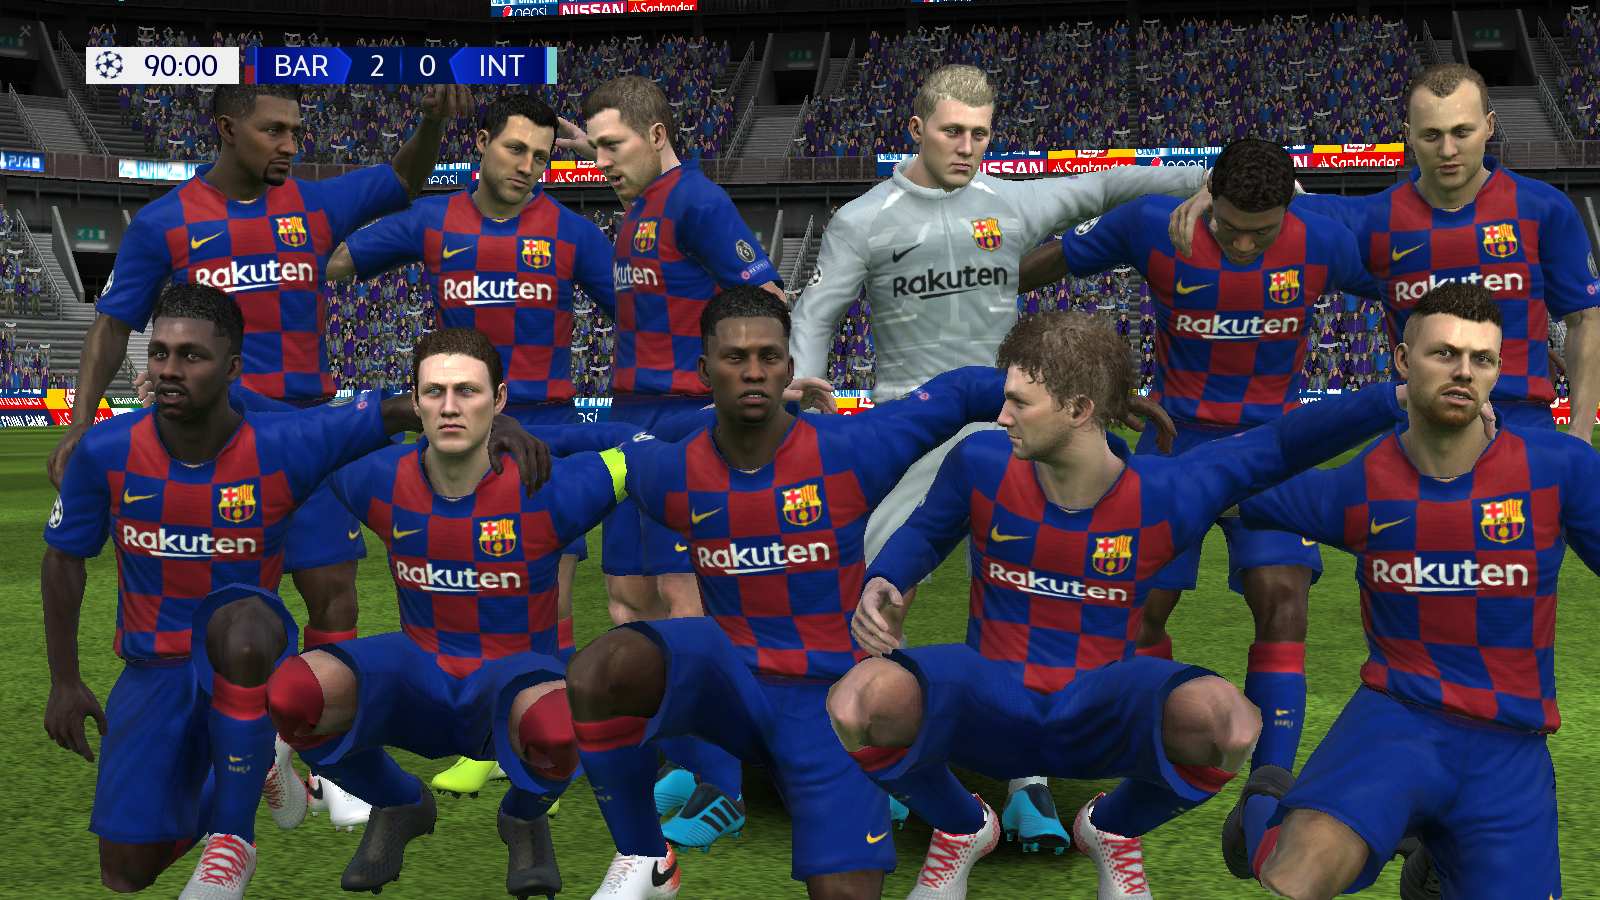 FC Barcelona image   FIFA Manager Season 2020 mod for FIFA Manager 1600x900